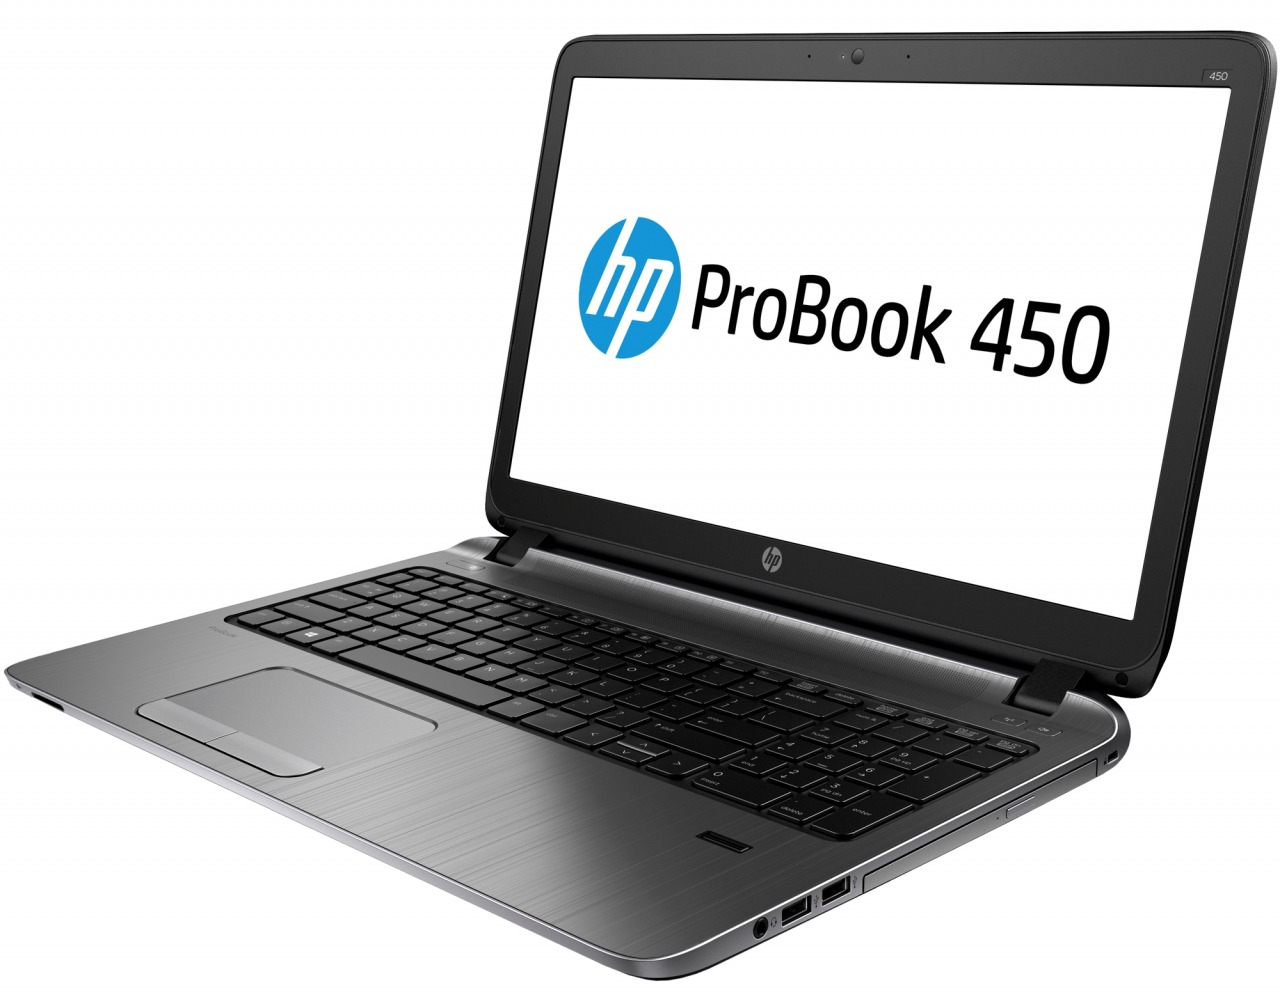 laptop hp probook 450 g2 _2.jpg